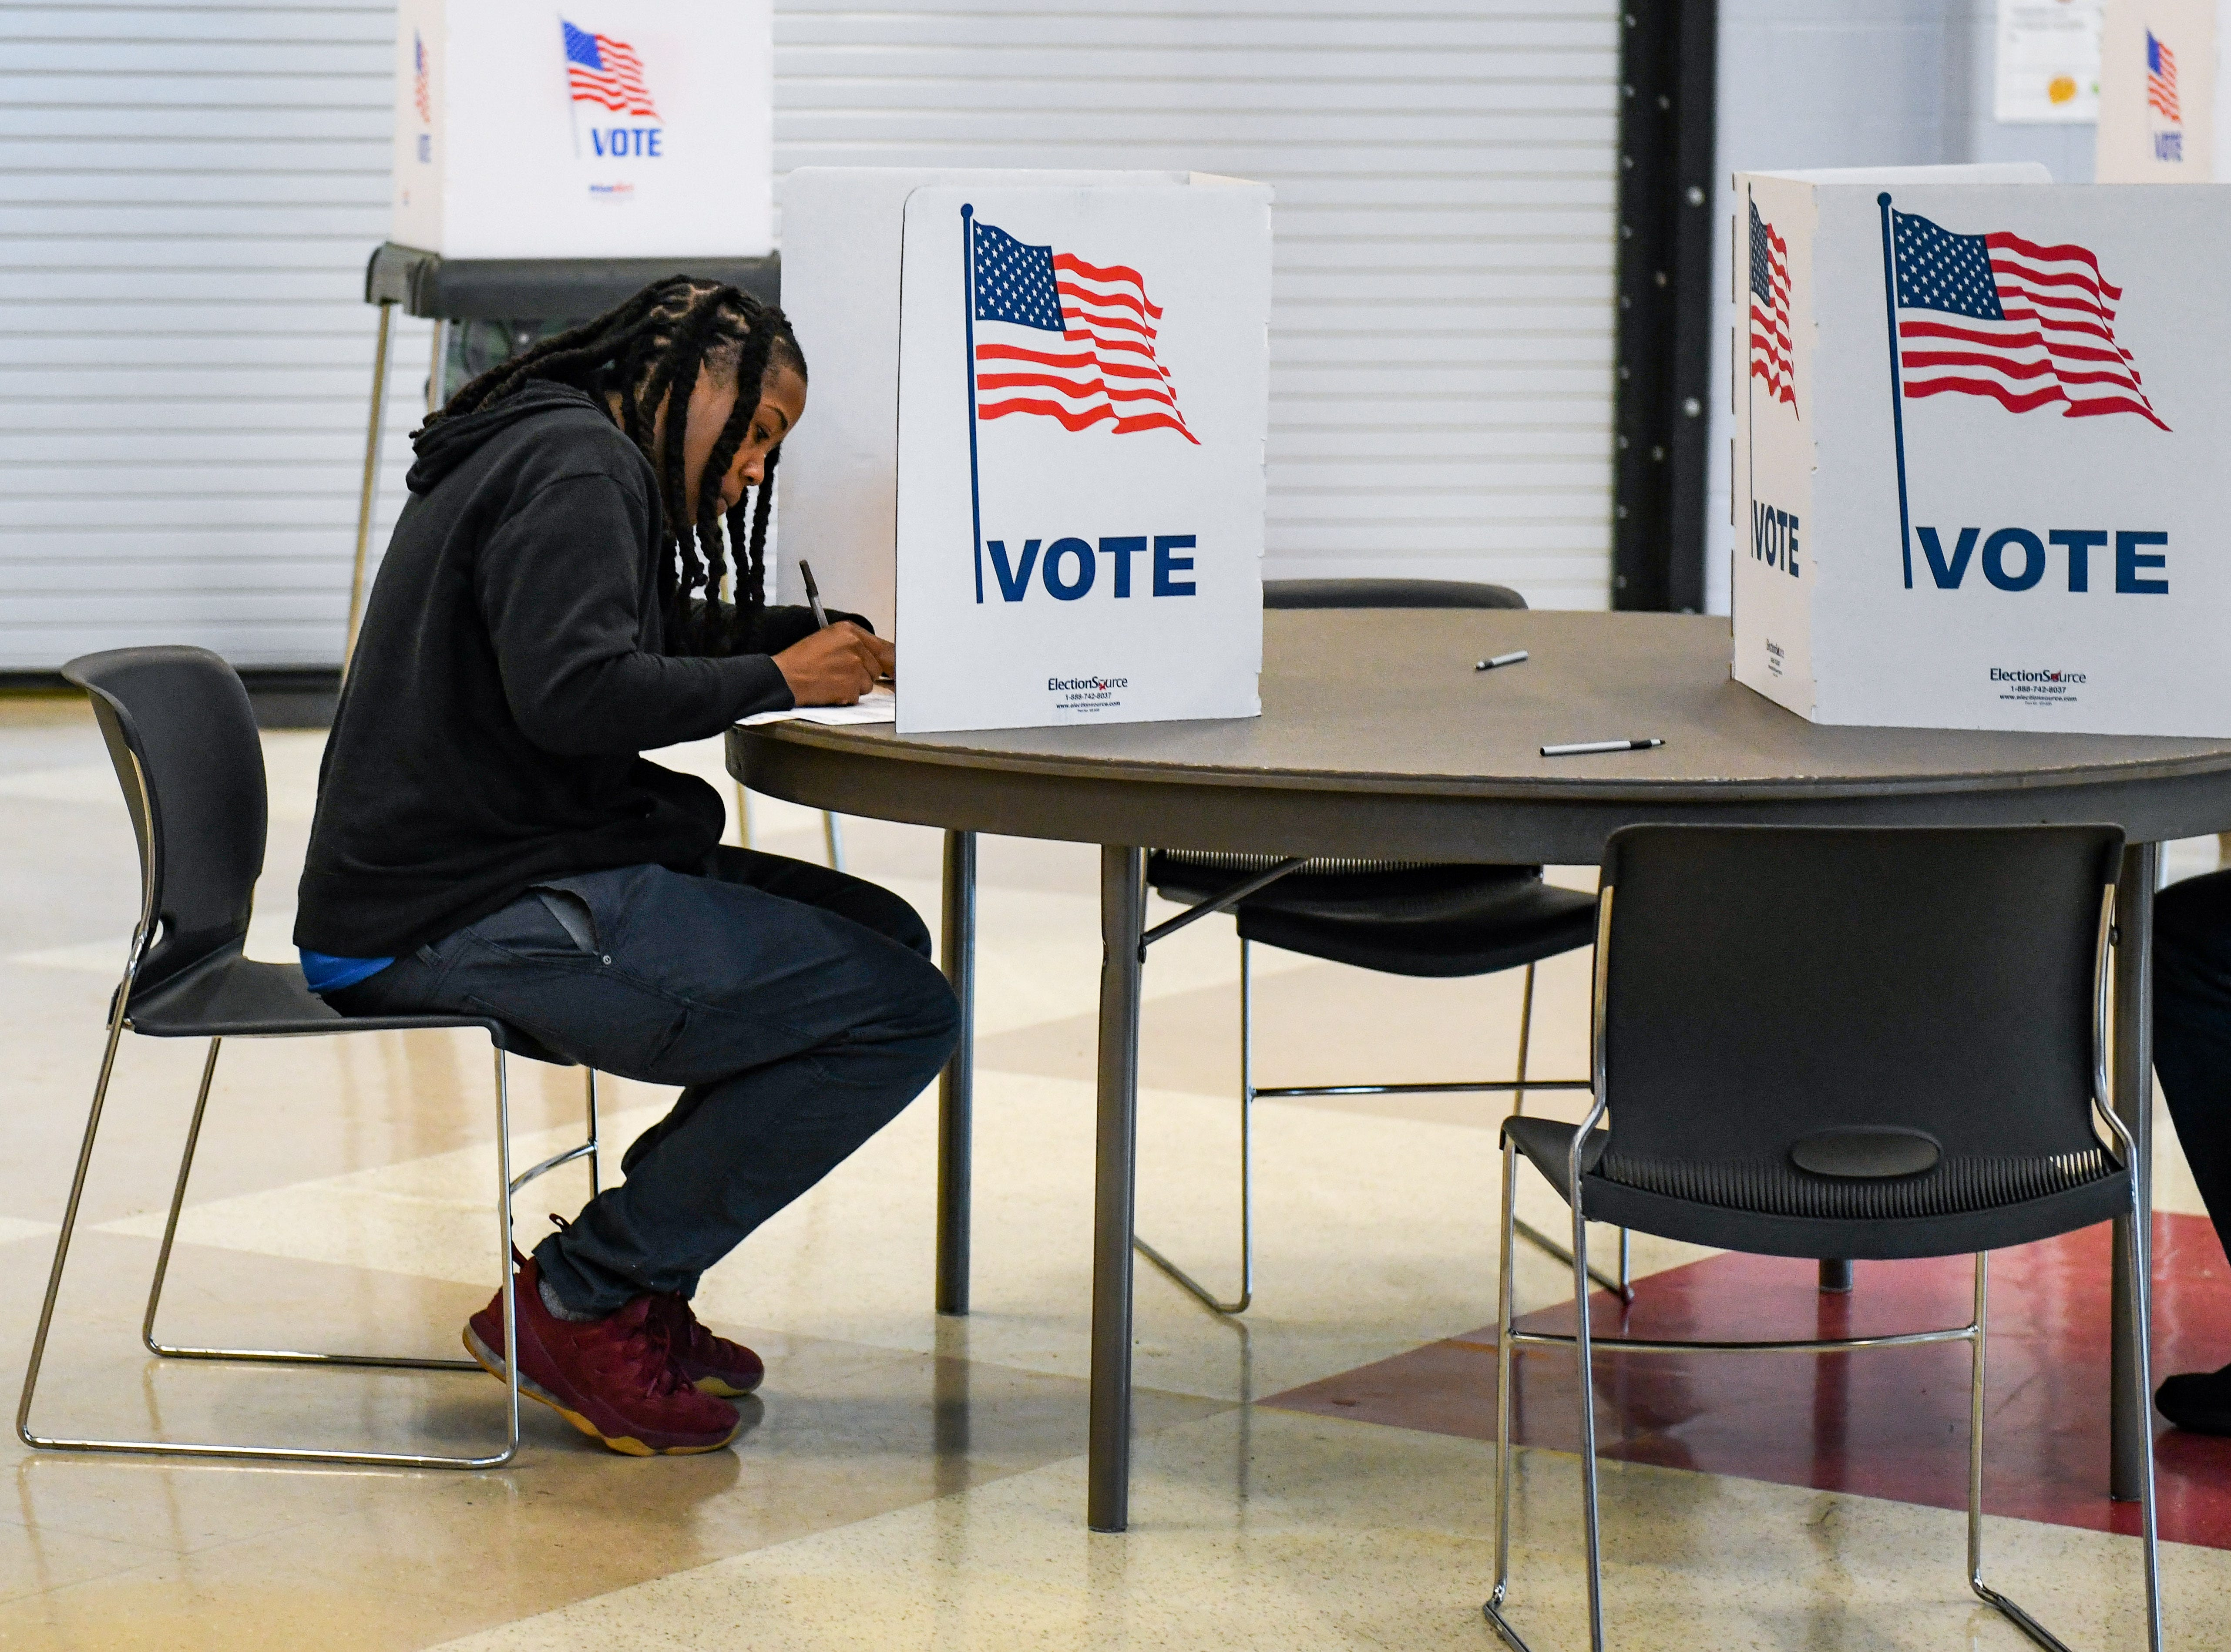 April Gibson votes in the midterm election at North Salisbury Elementary School on Tuesday, Nov 6, 2018.